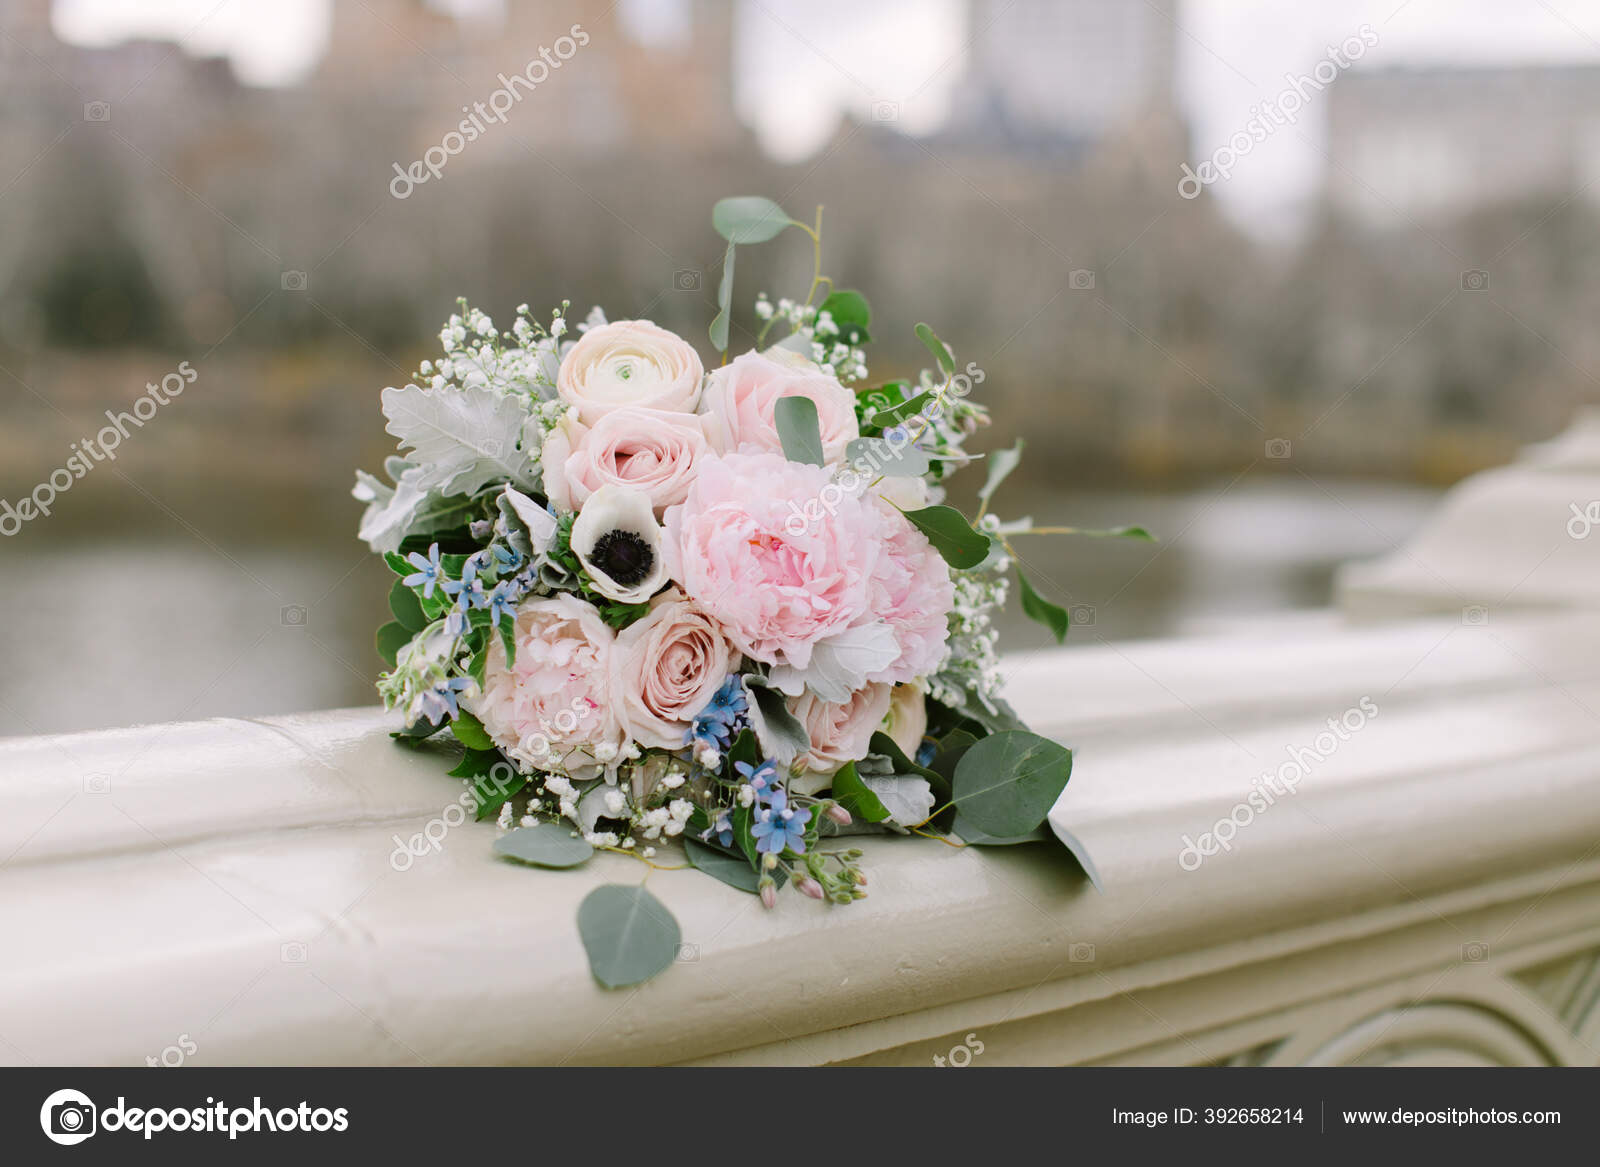 Romantic Organic Bridal Bouquet Made Light Colored Florals Baby Pink Stock Photo Image By C Marthagraham 392658214